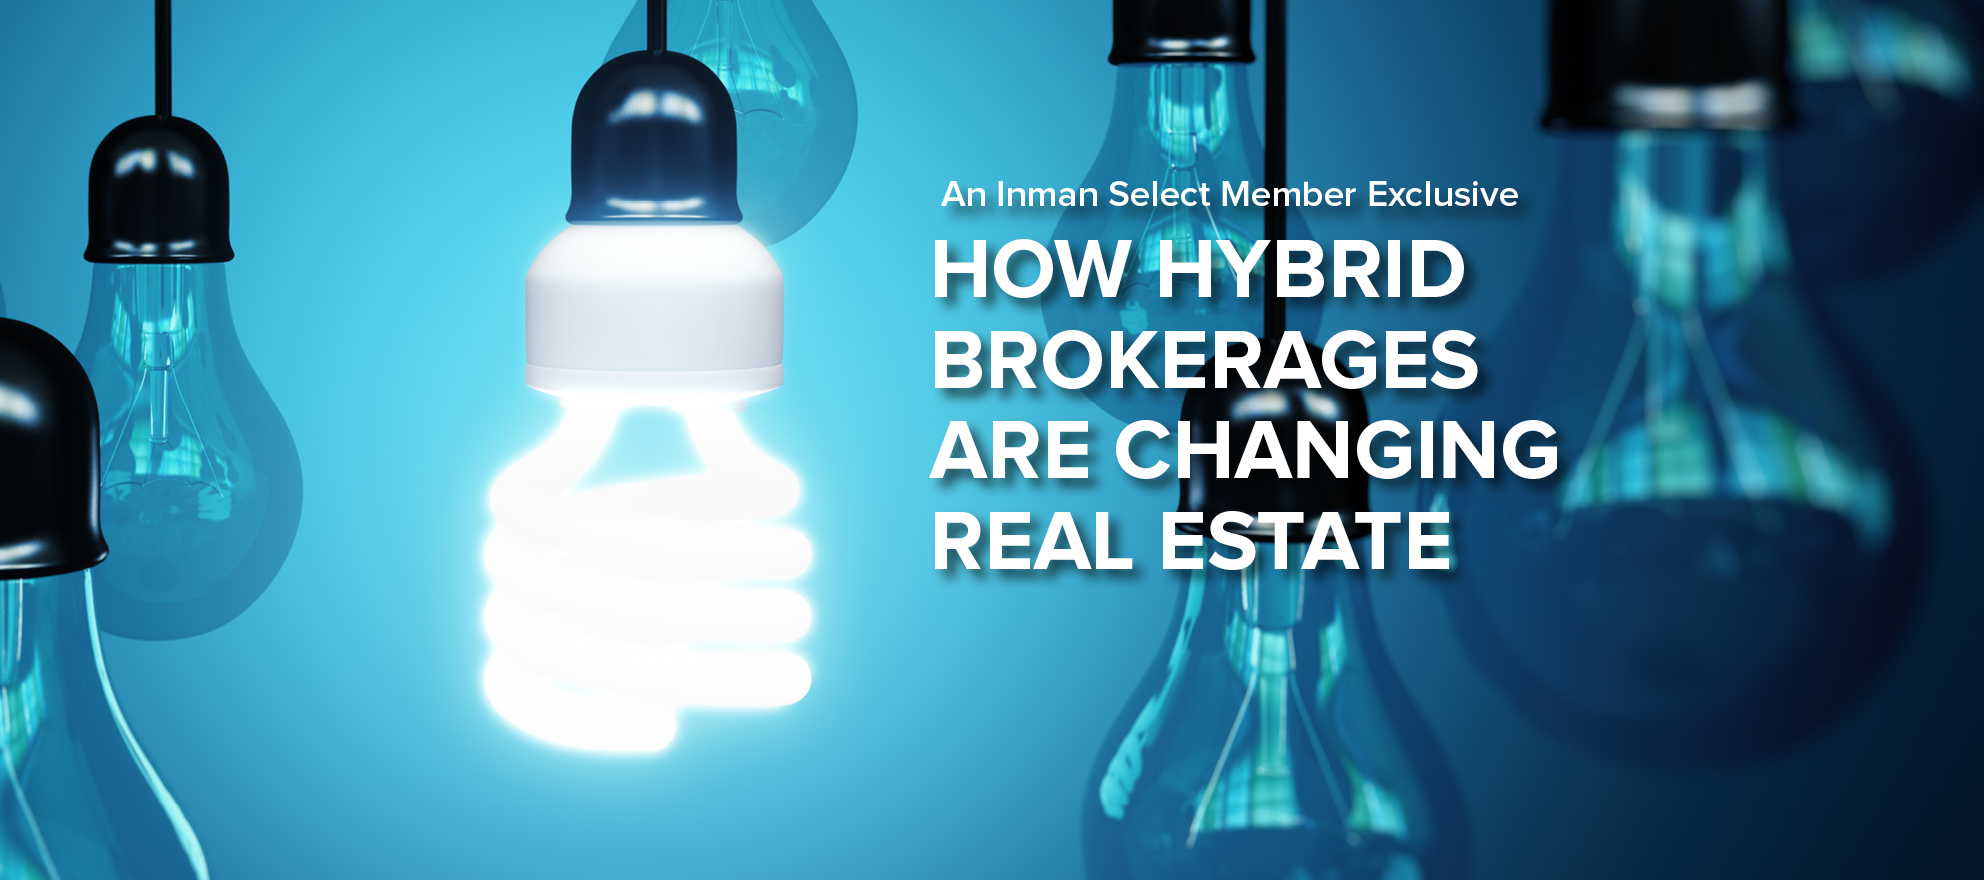 How hybrid brokerages are changing real estate [Special Report]